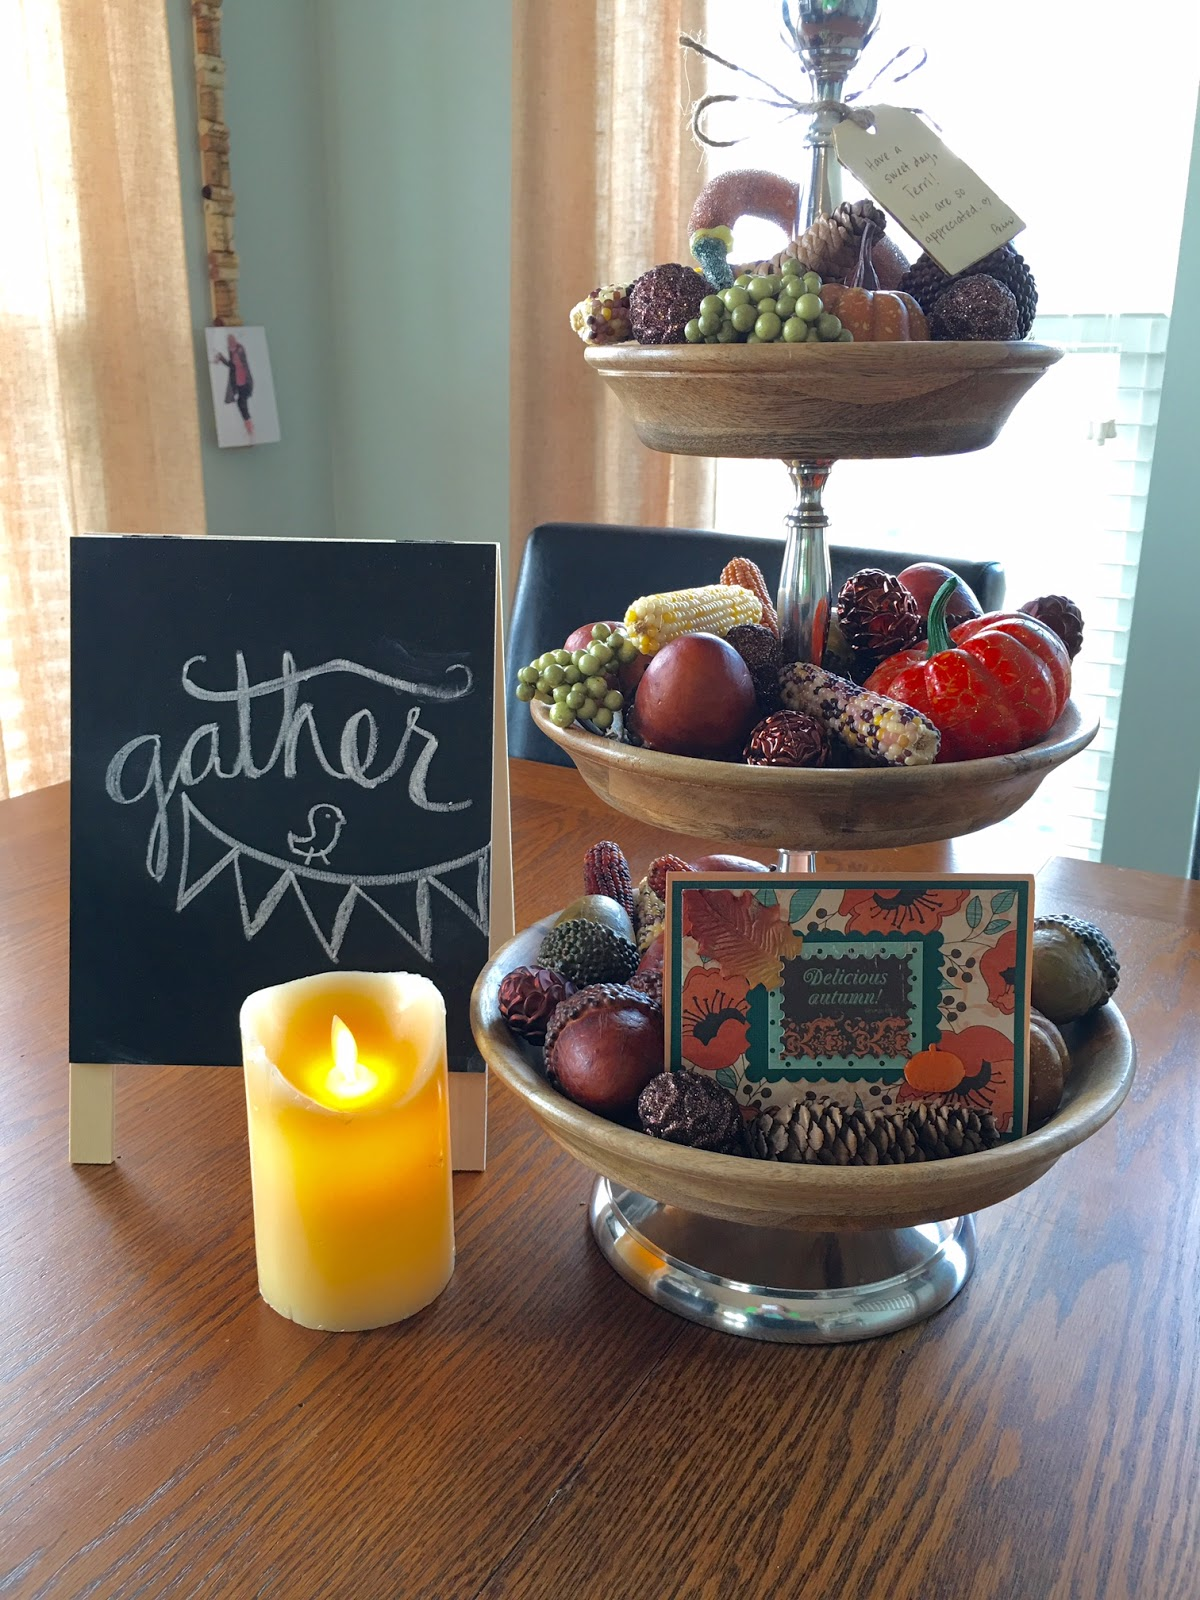 Trays For Decor On Kitchen Counter Ideas: Our Good Life: Using My Three Tier Tray For Fall Decor